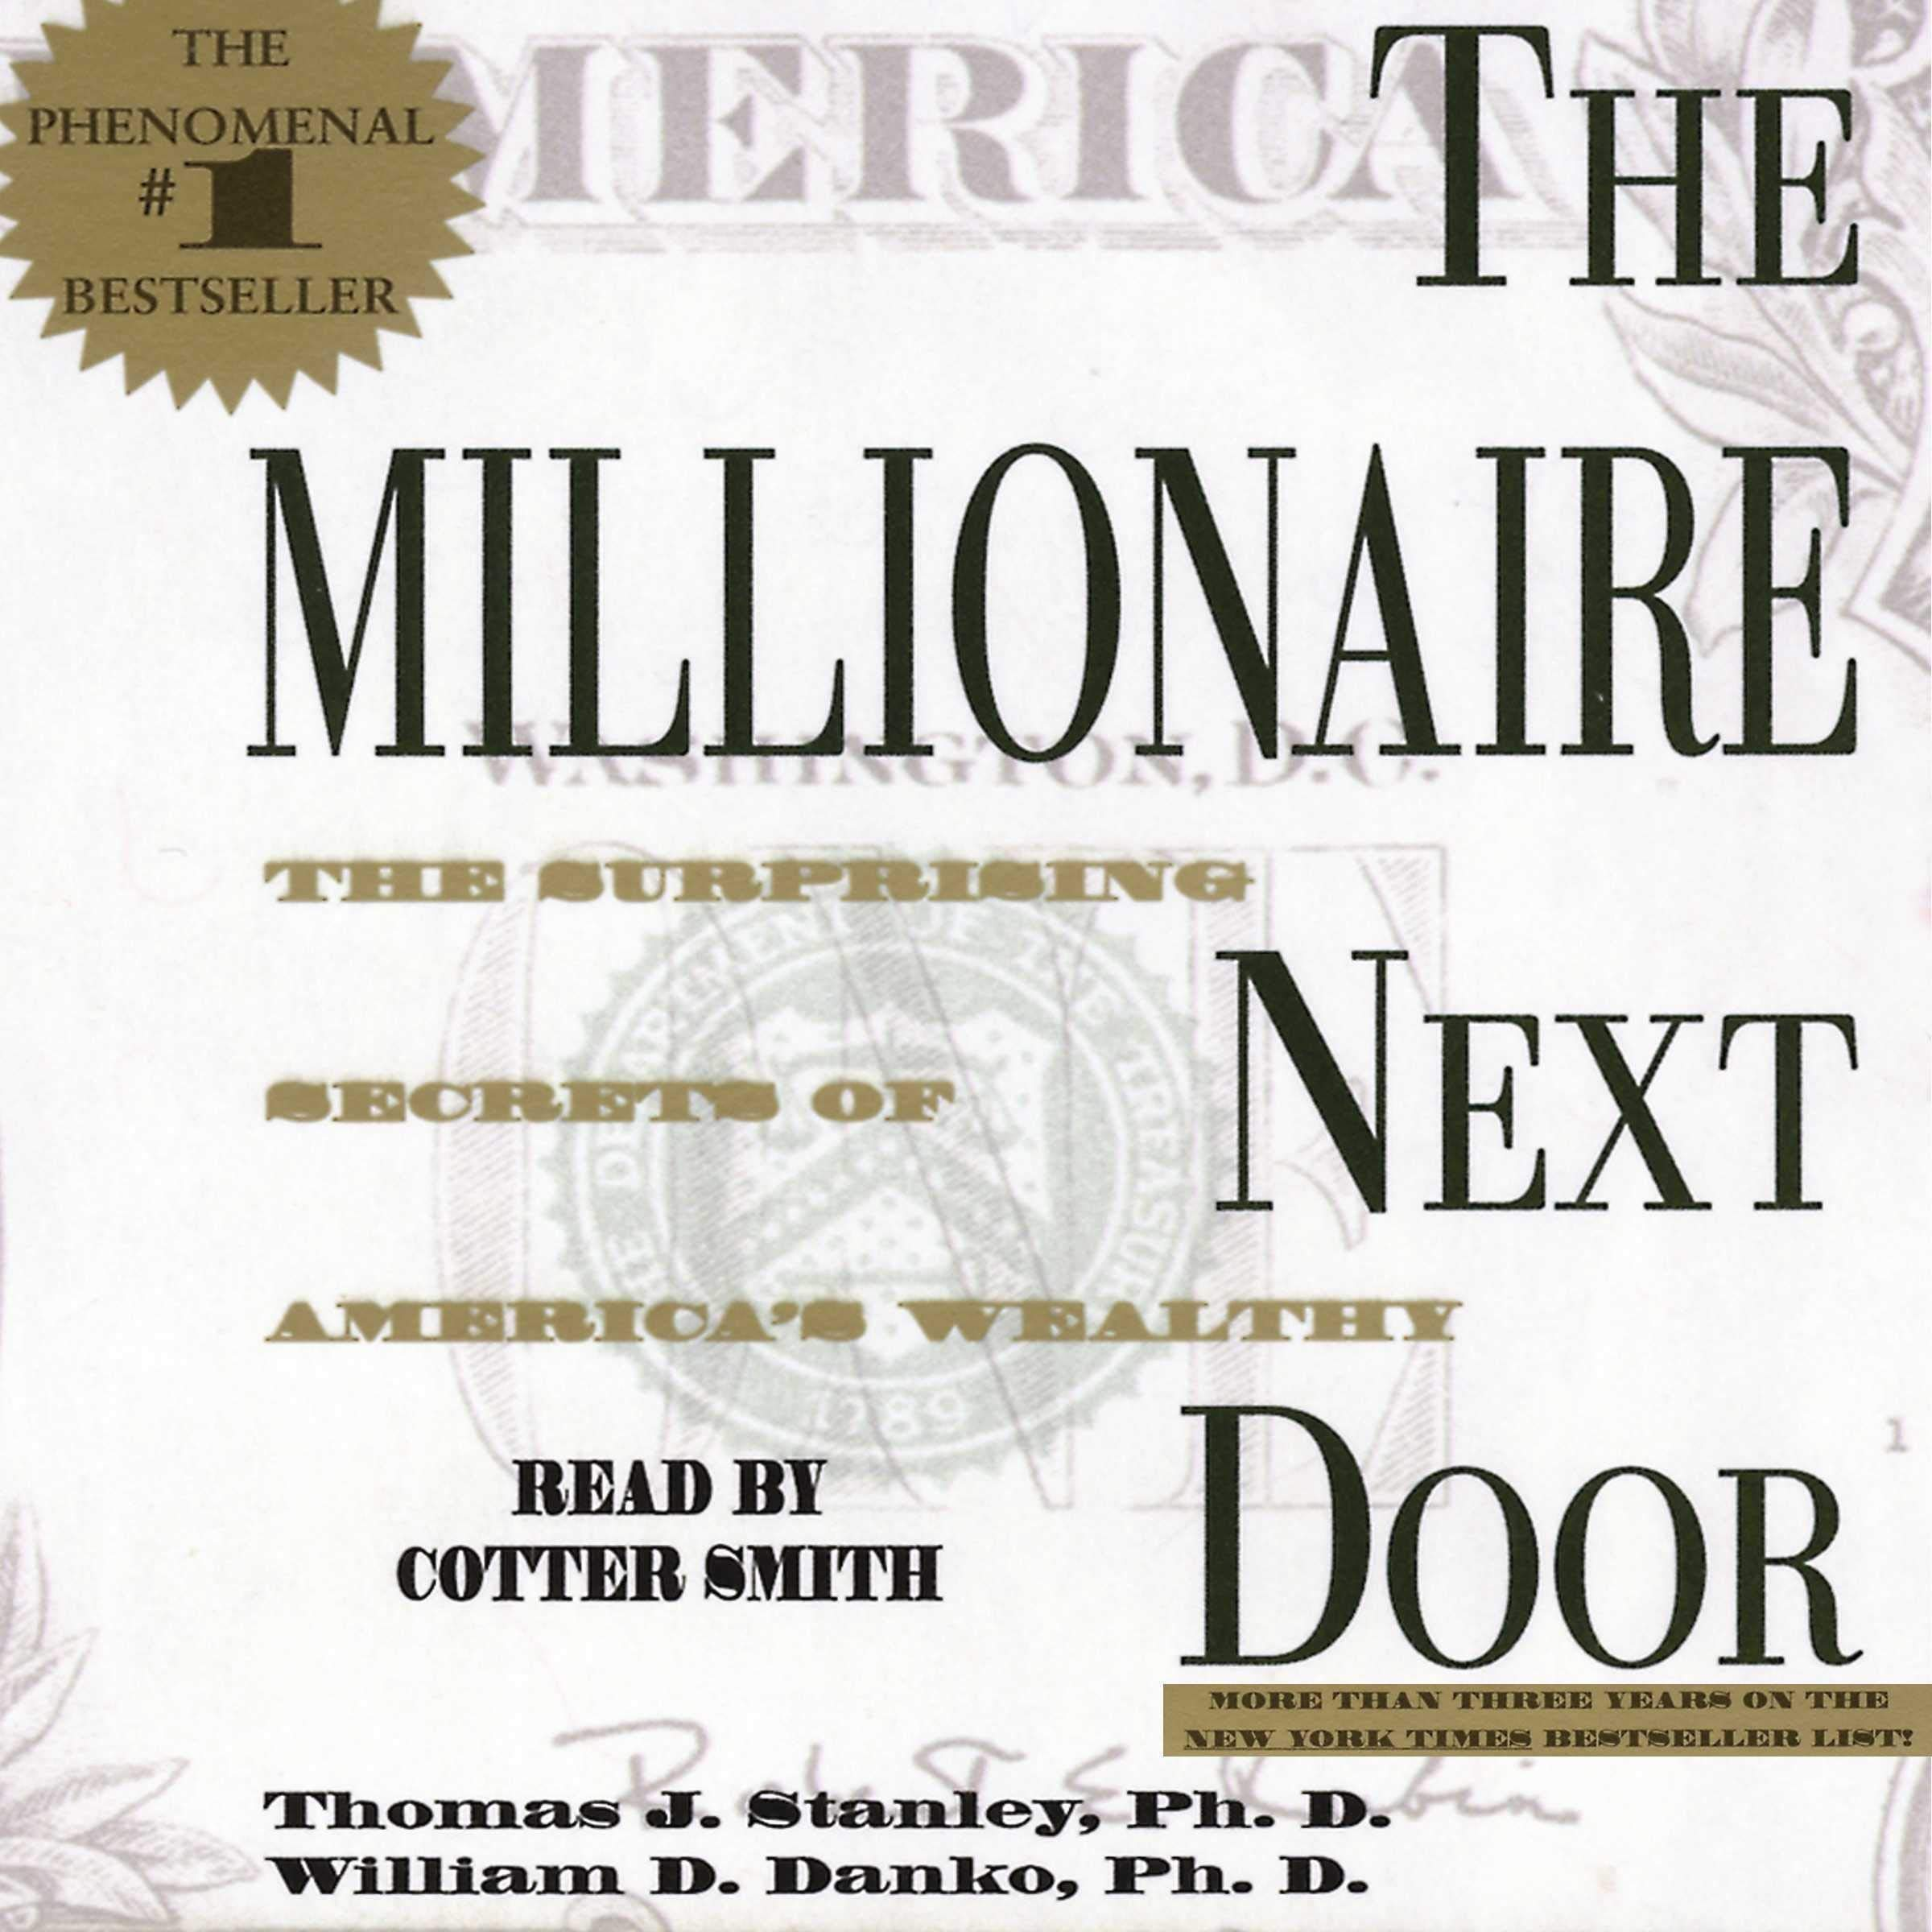 The Surprising Secrets of Americas Wealthy The Millionaire Next Door